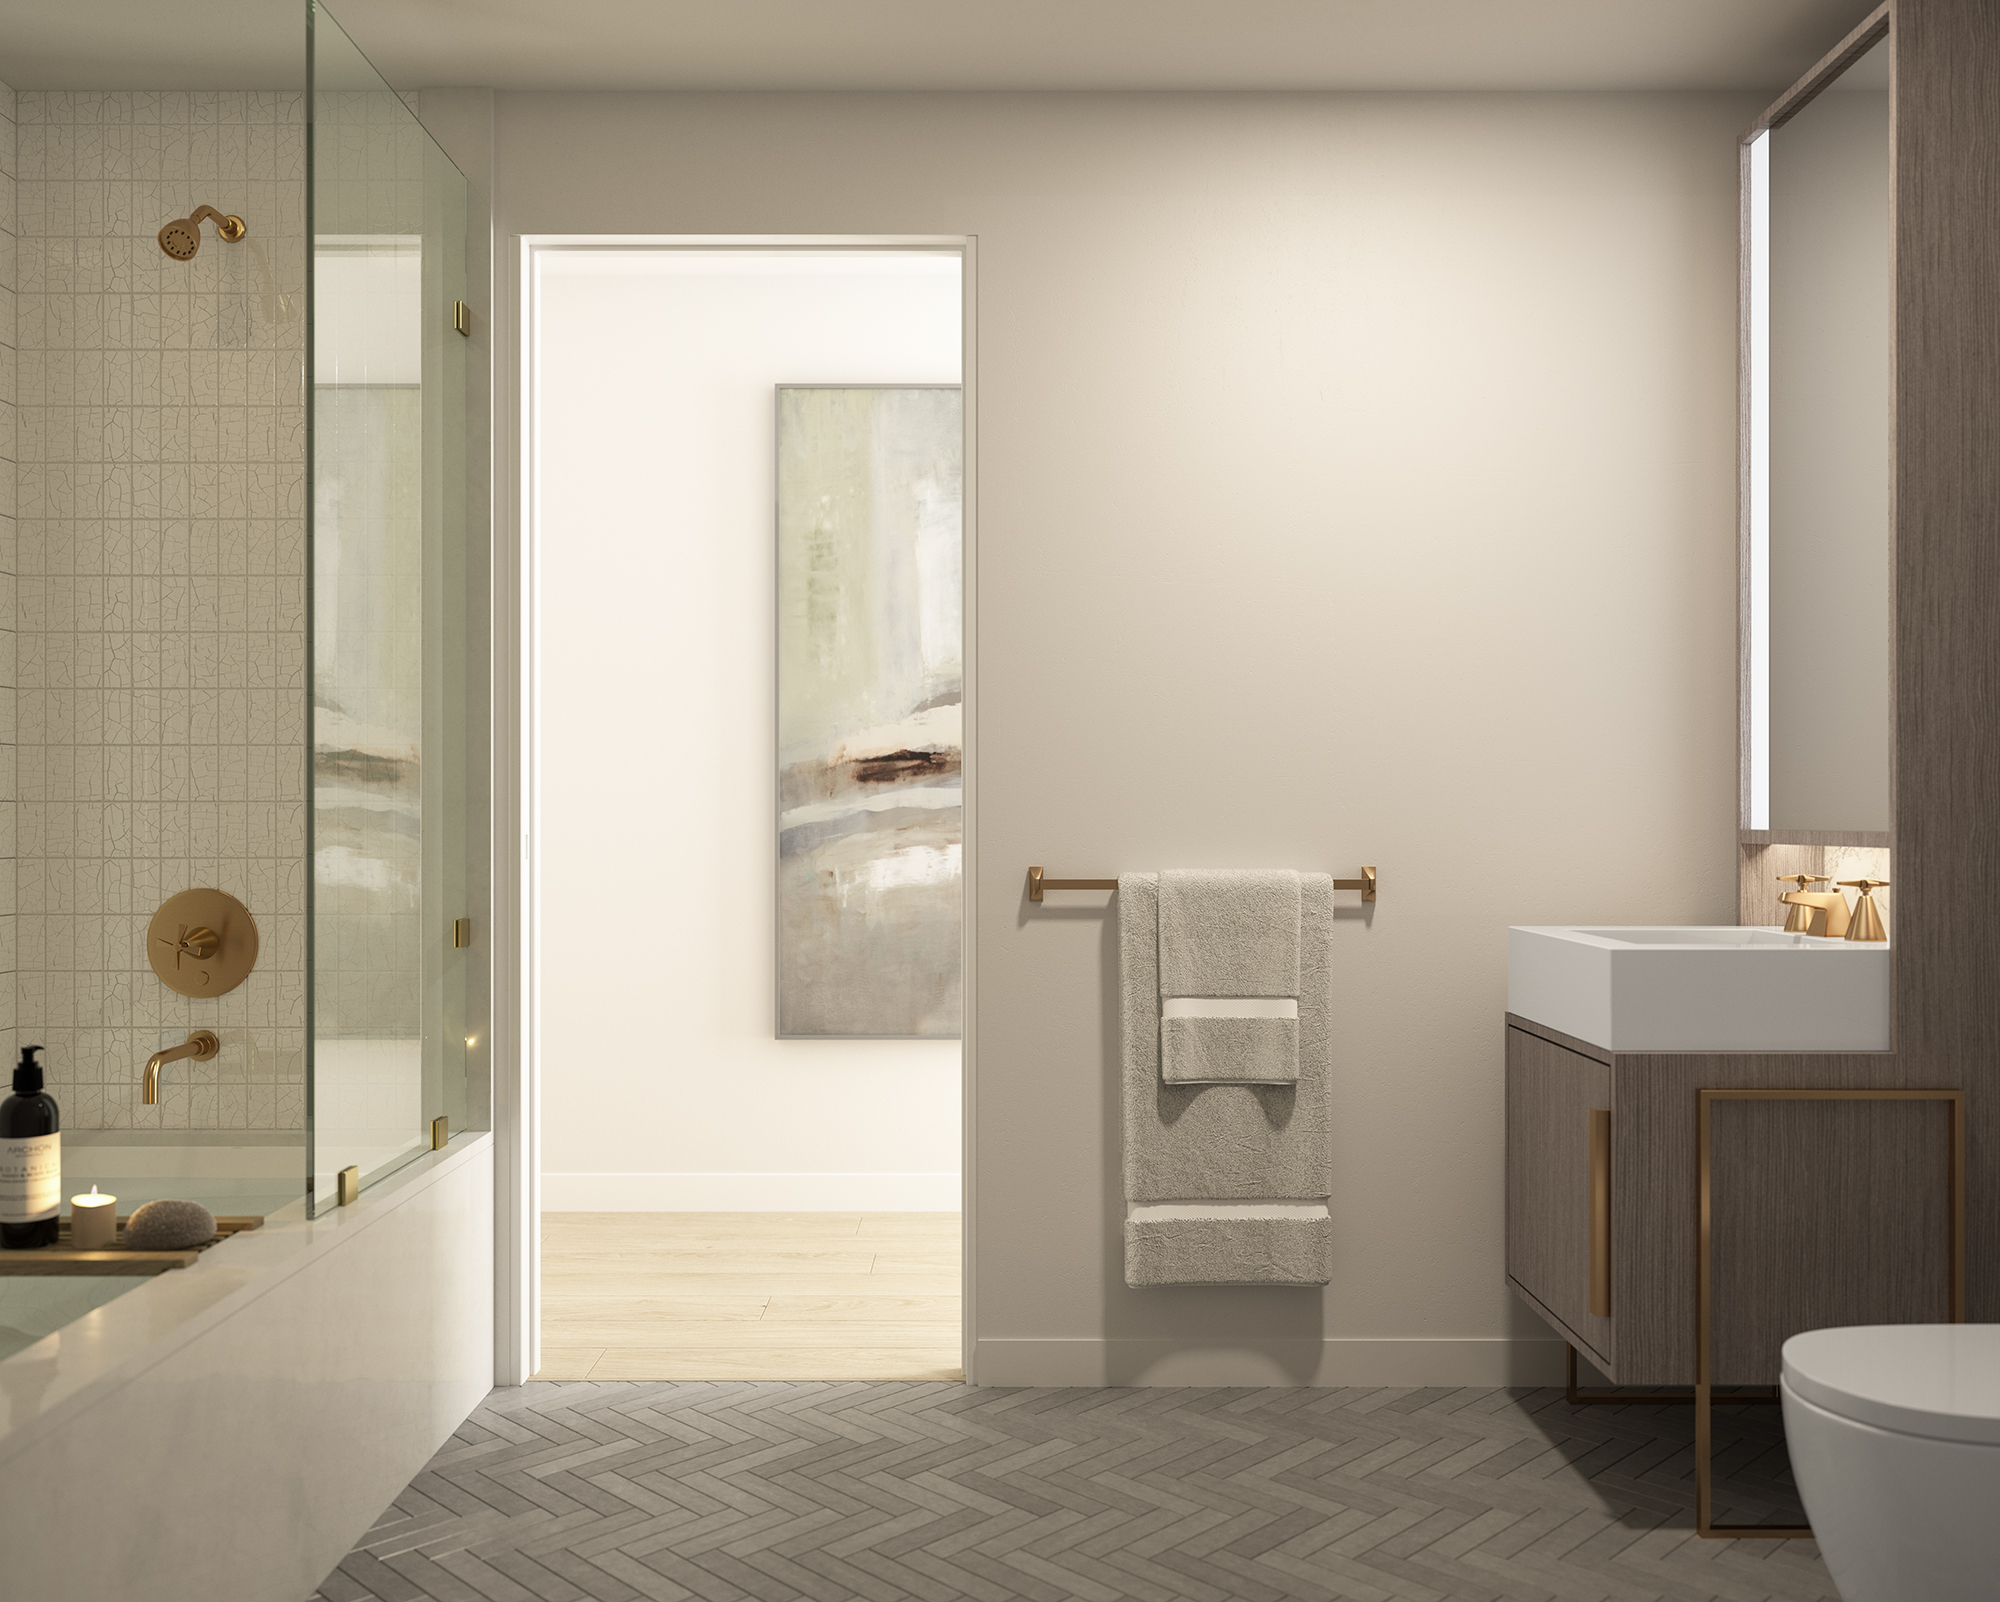 Parlour Brooklyn Secondary Bathroom Rendering